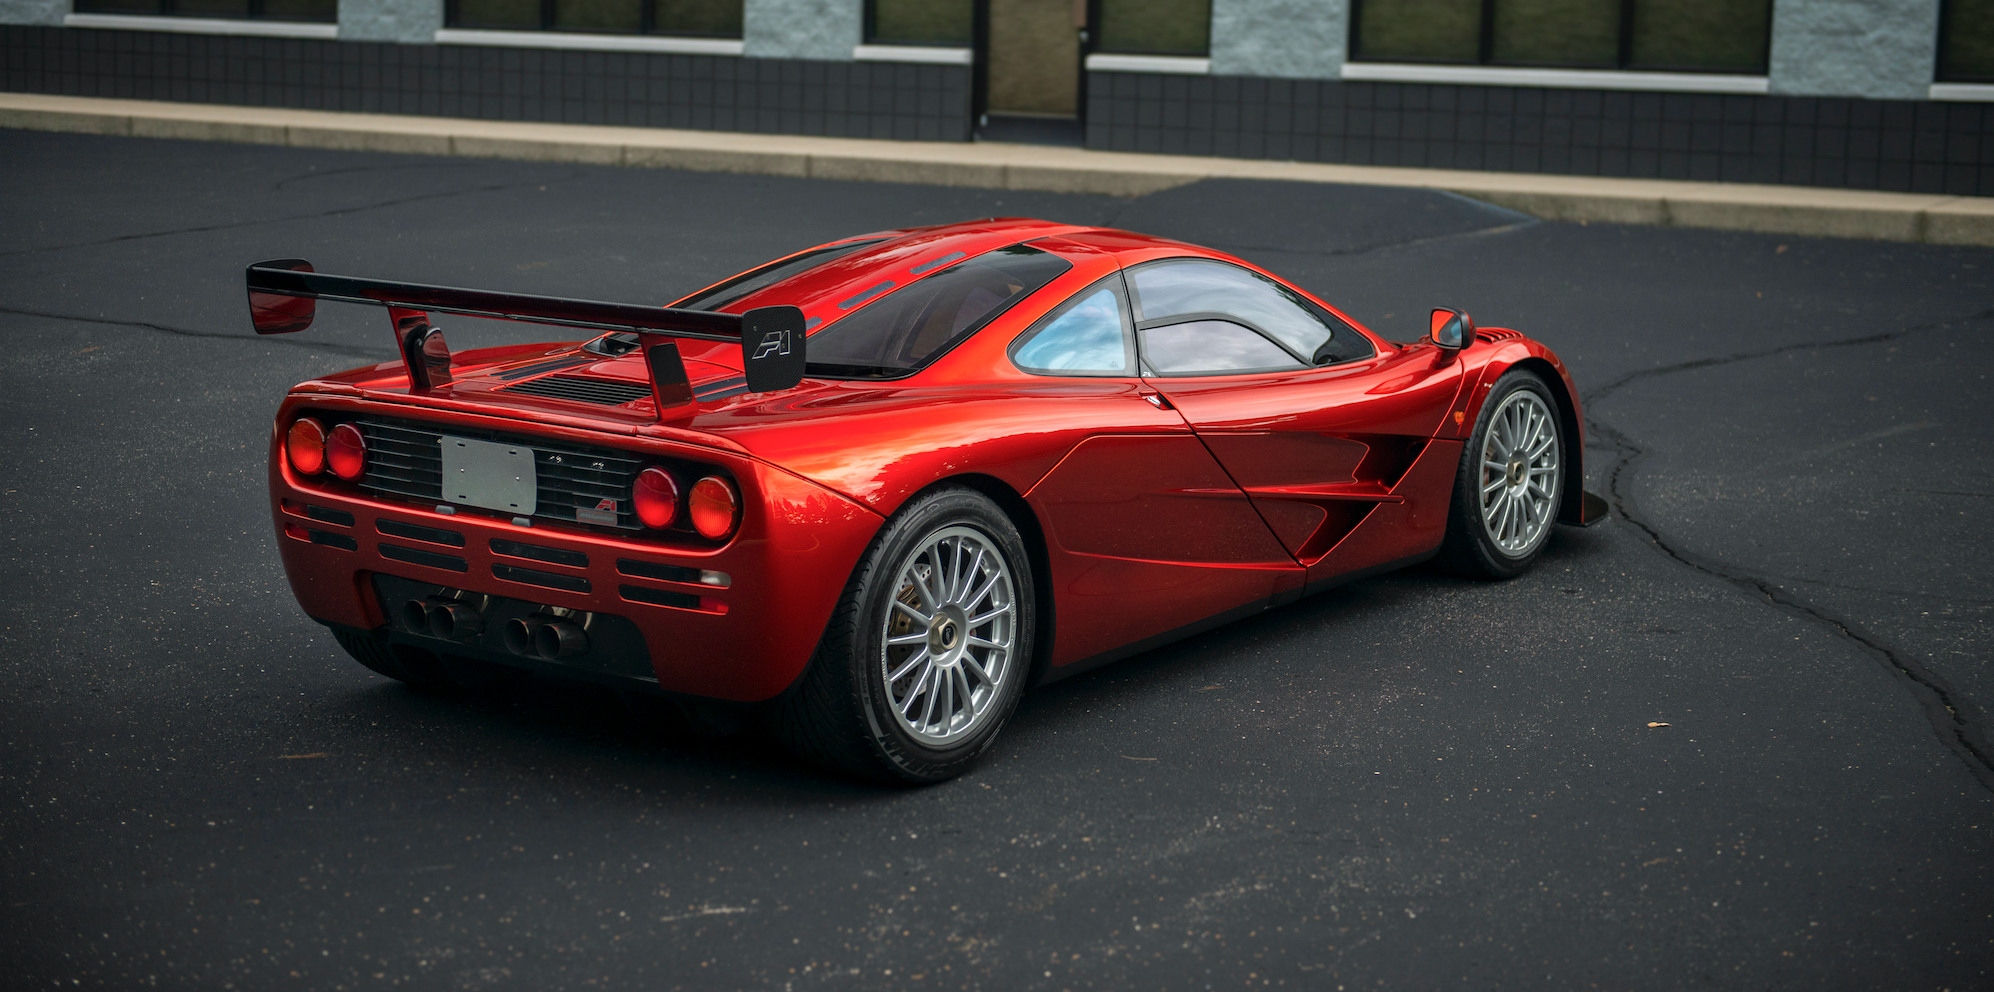 this mclaren f1 is even more special than it looks